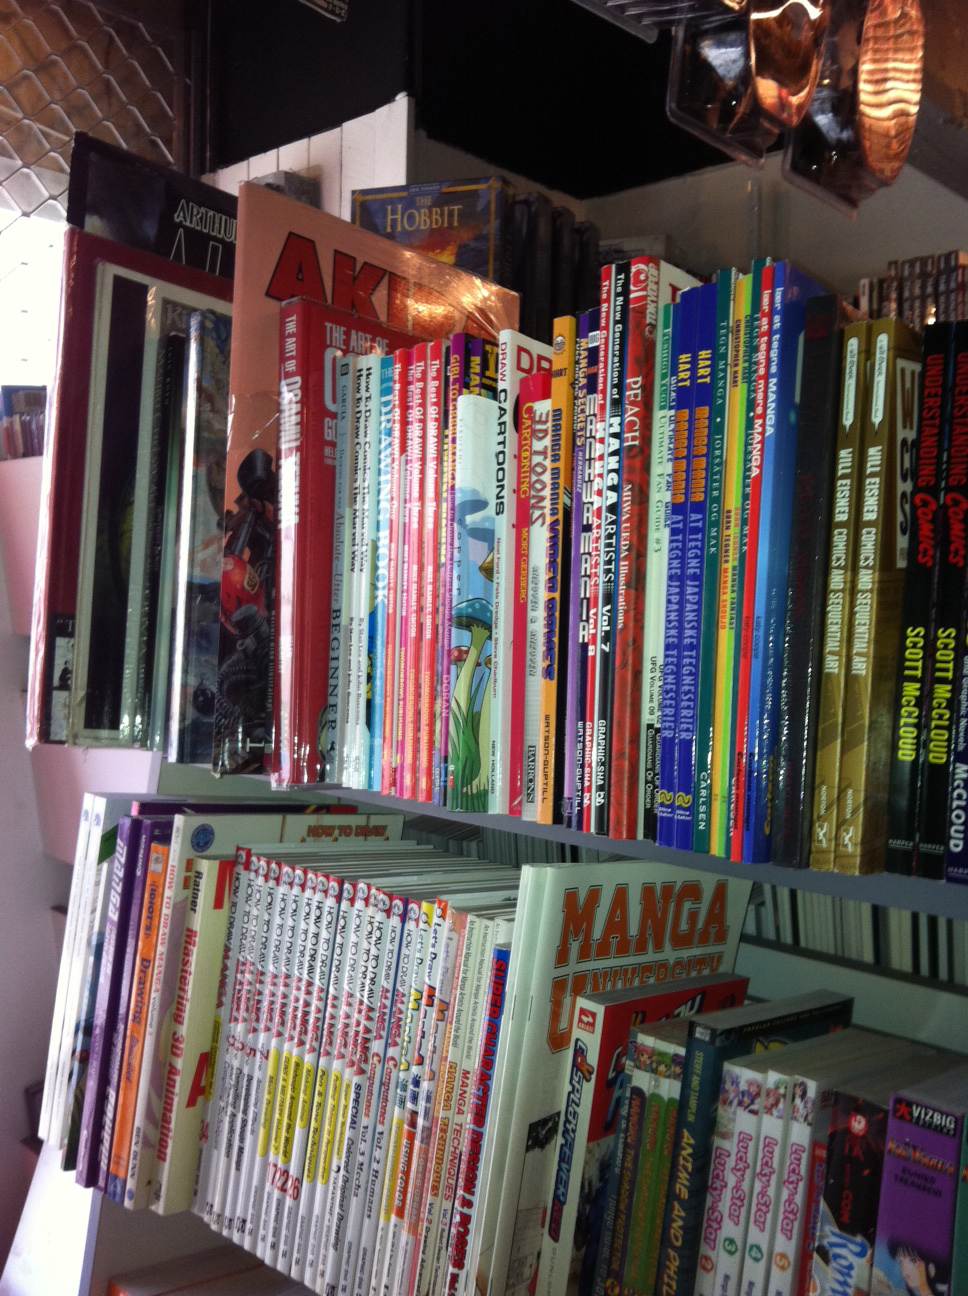 Danish comic book store in Aarhus